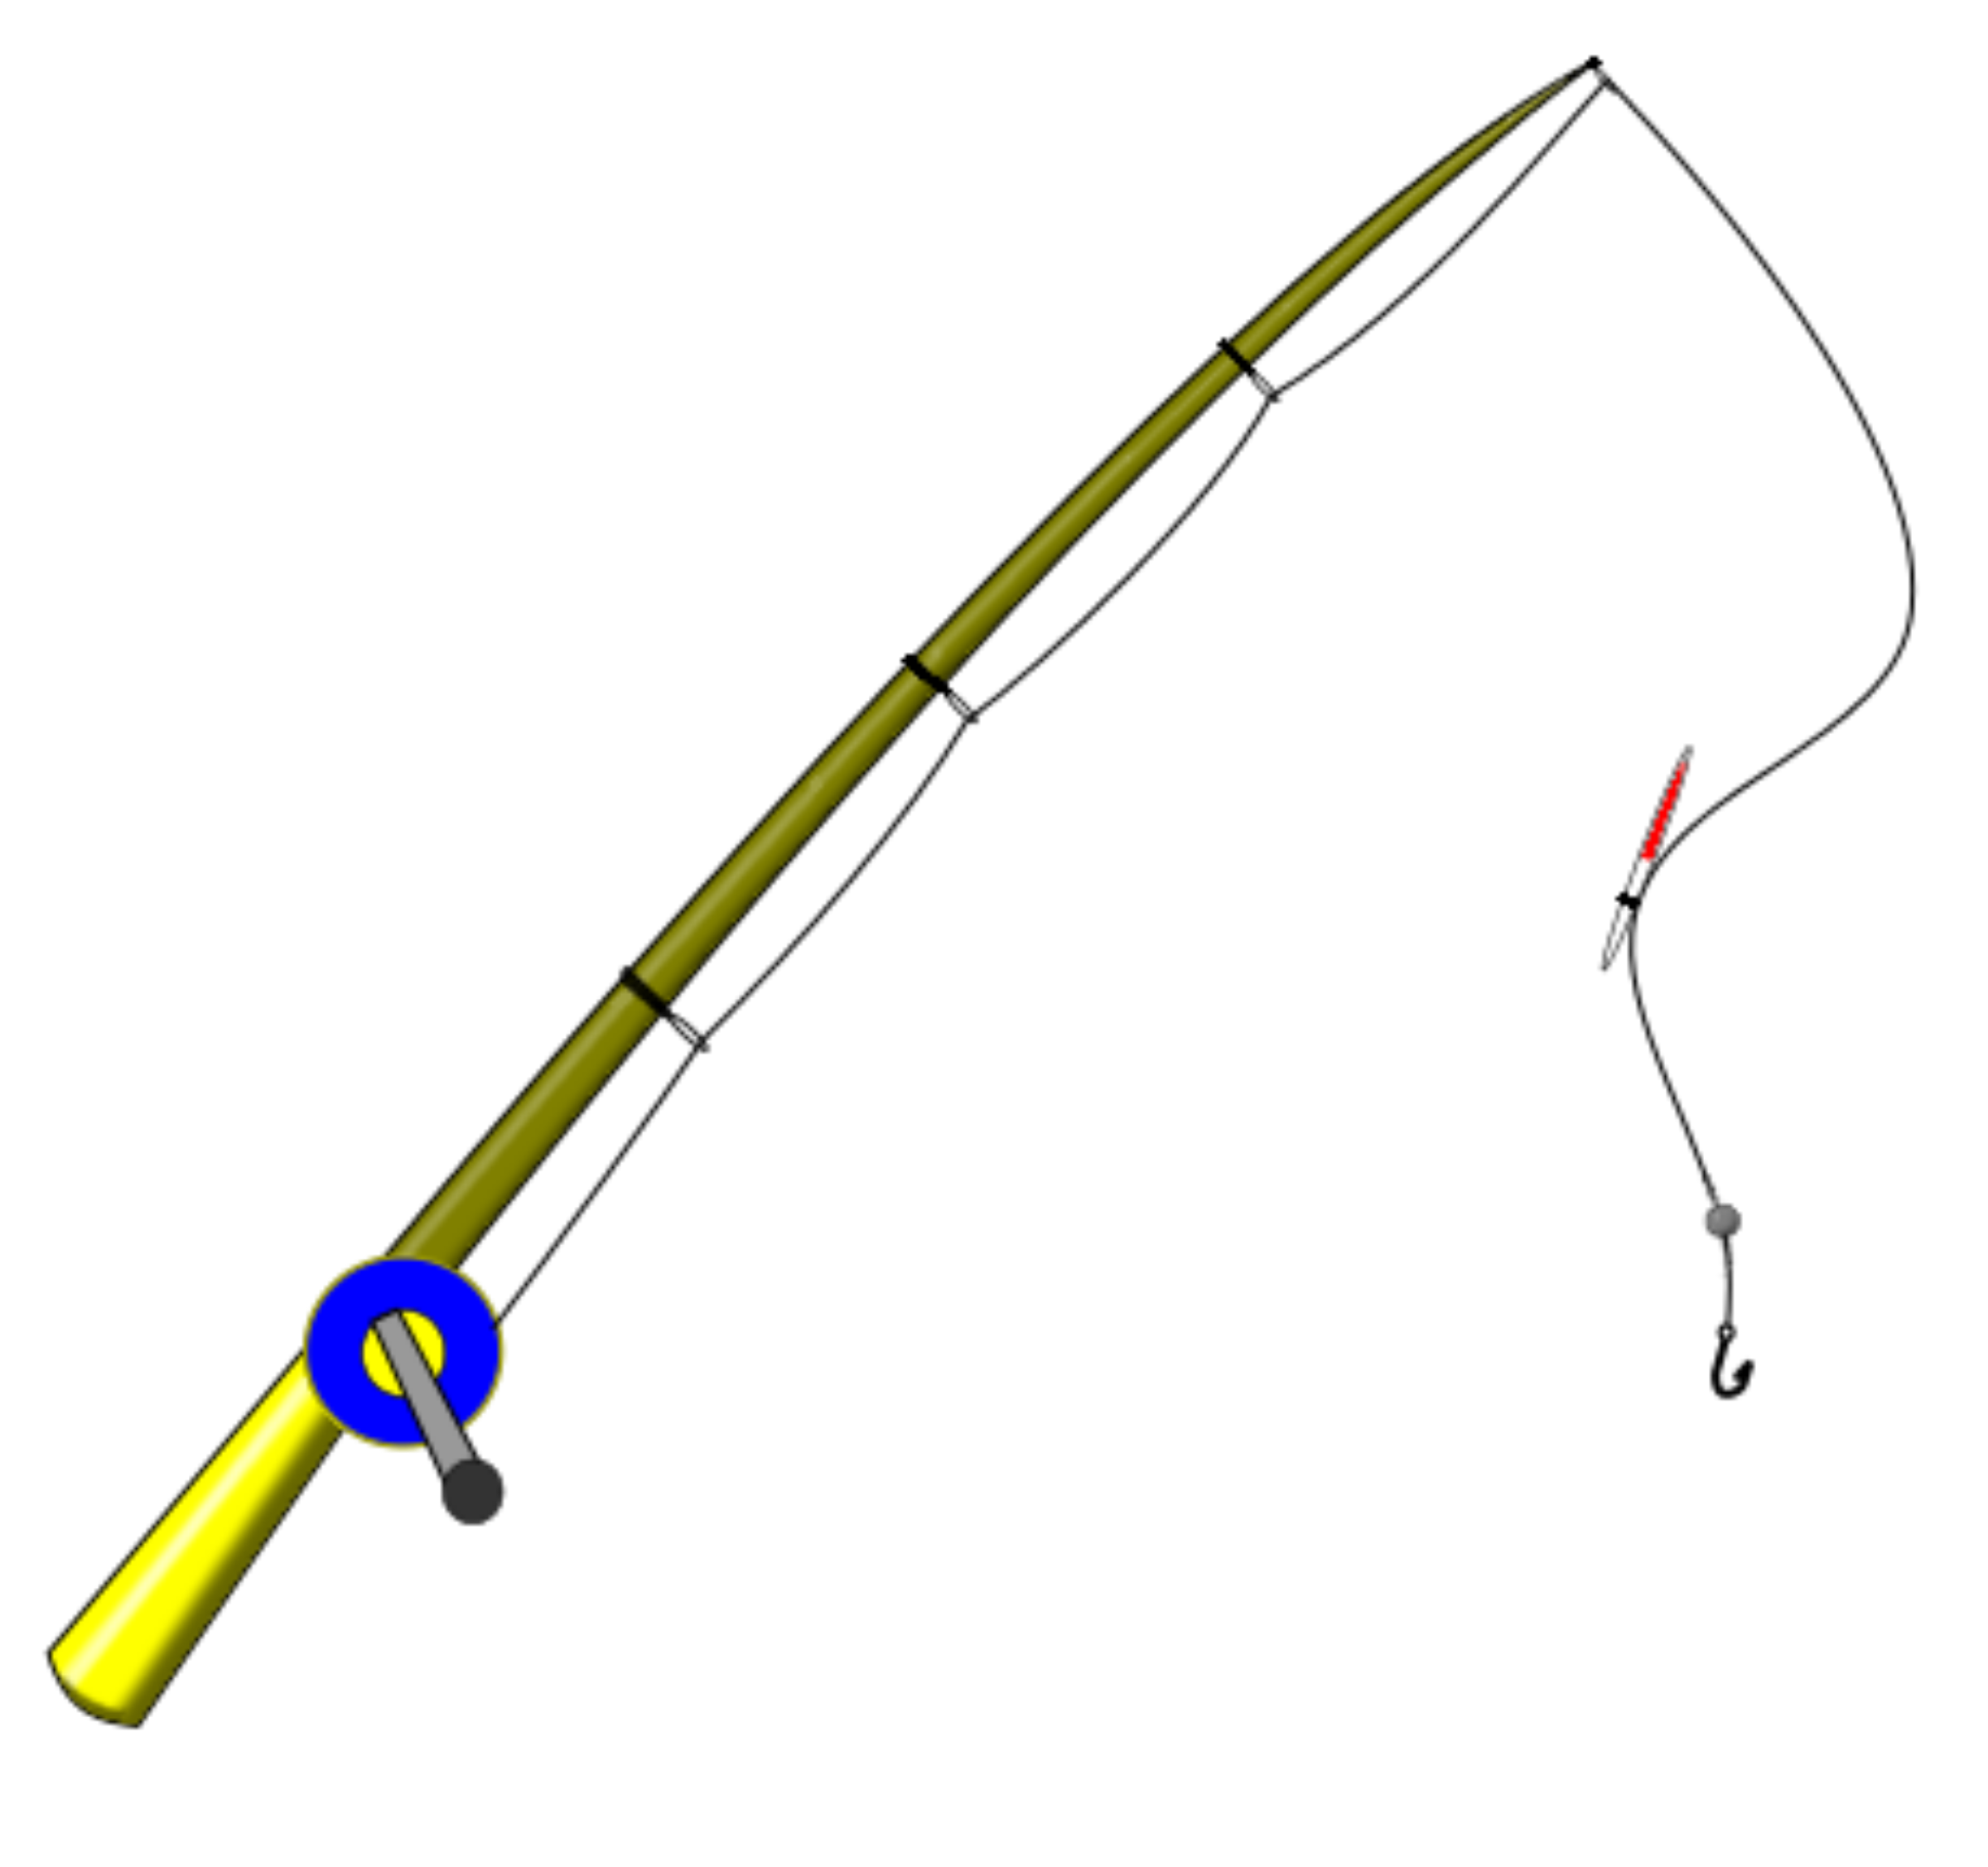 clipart fishing rod